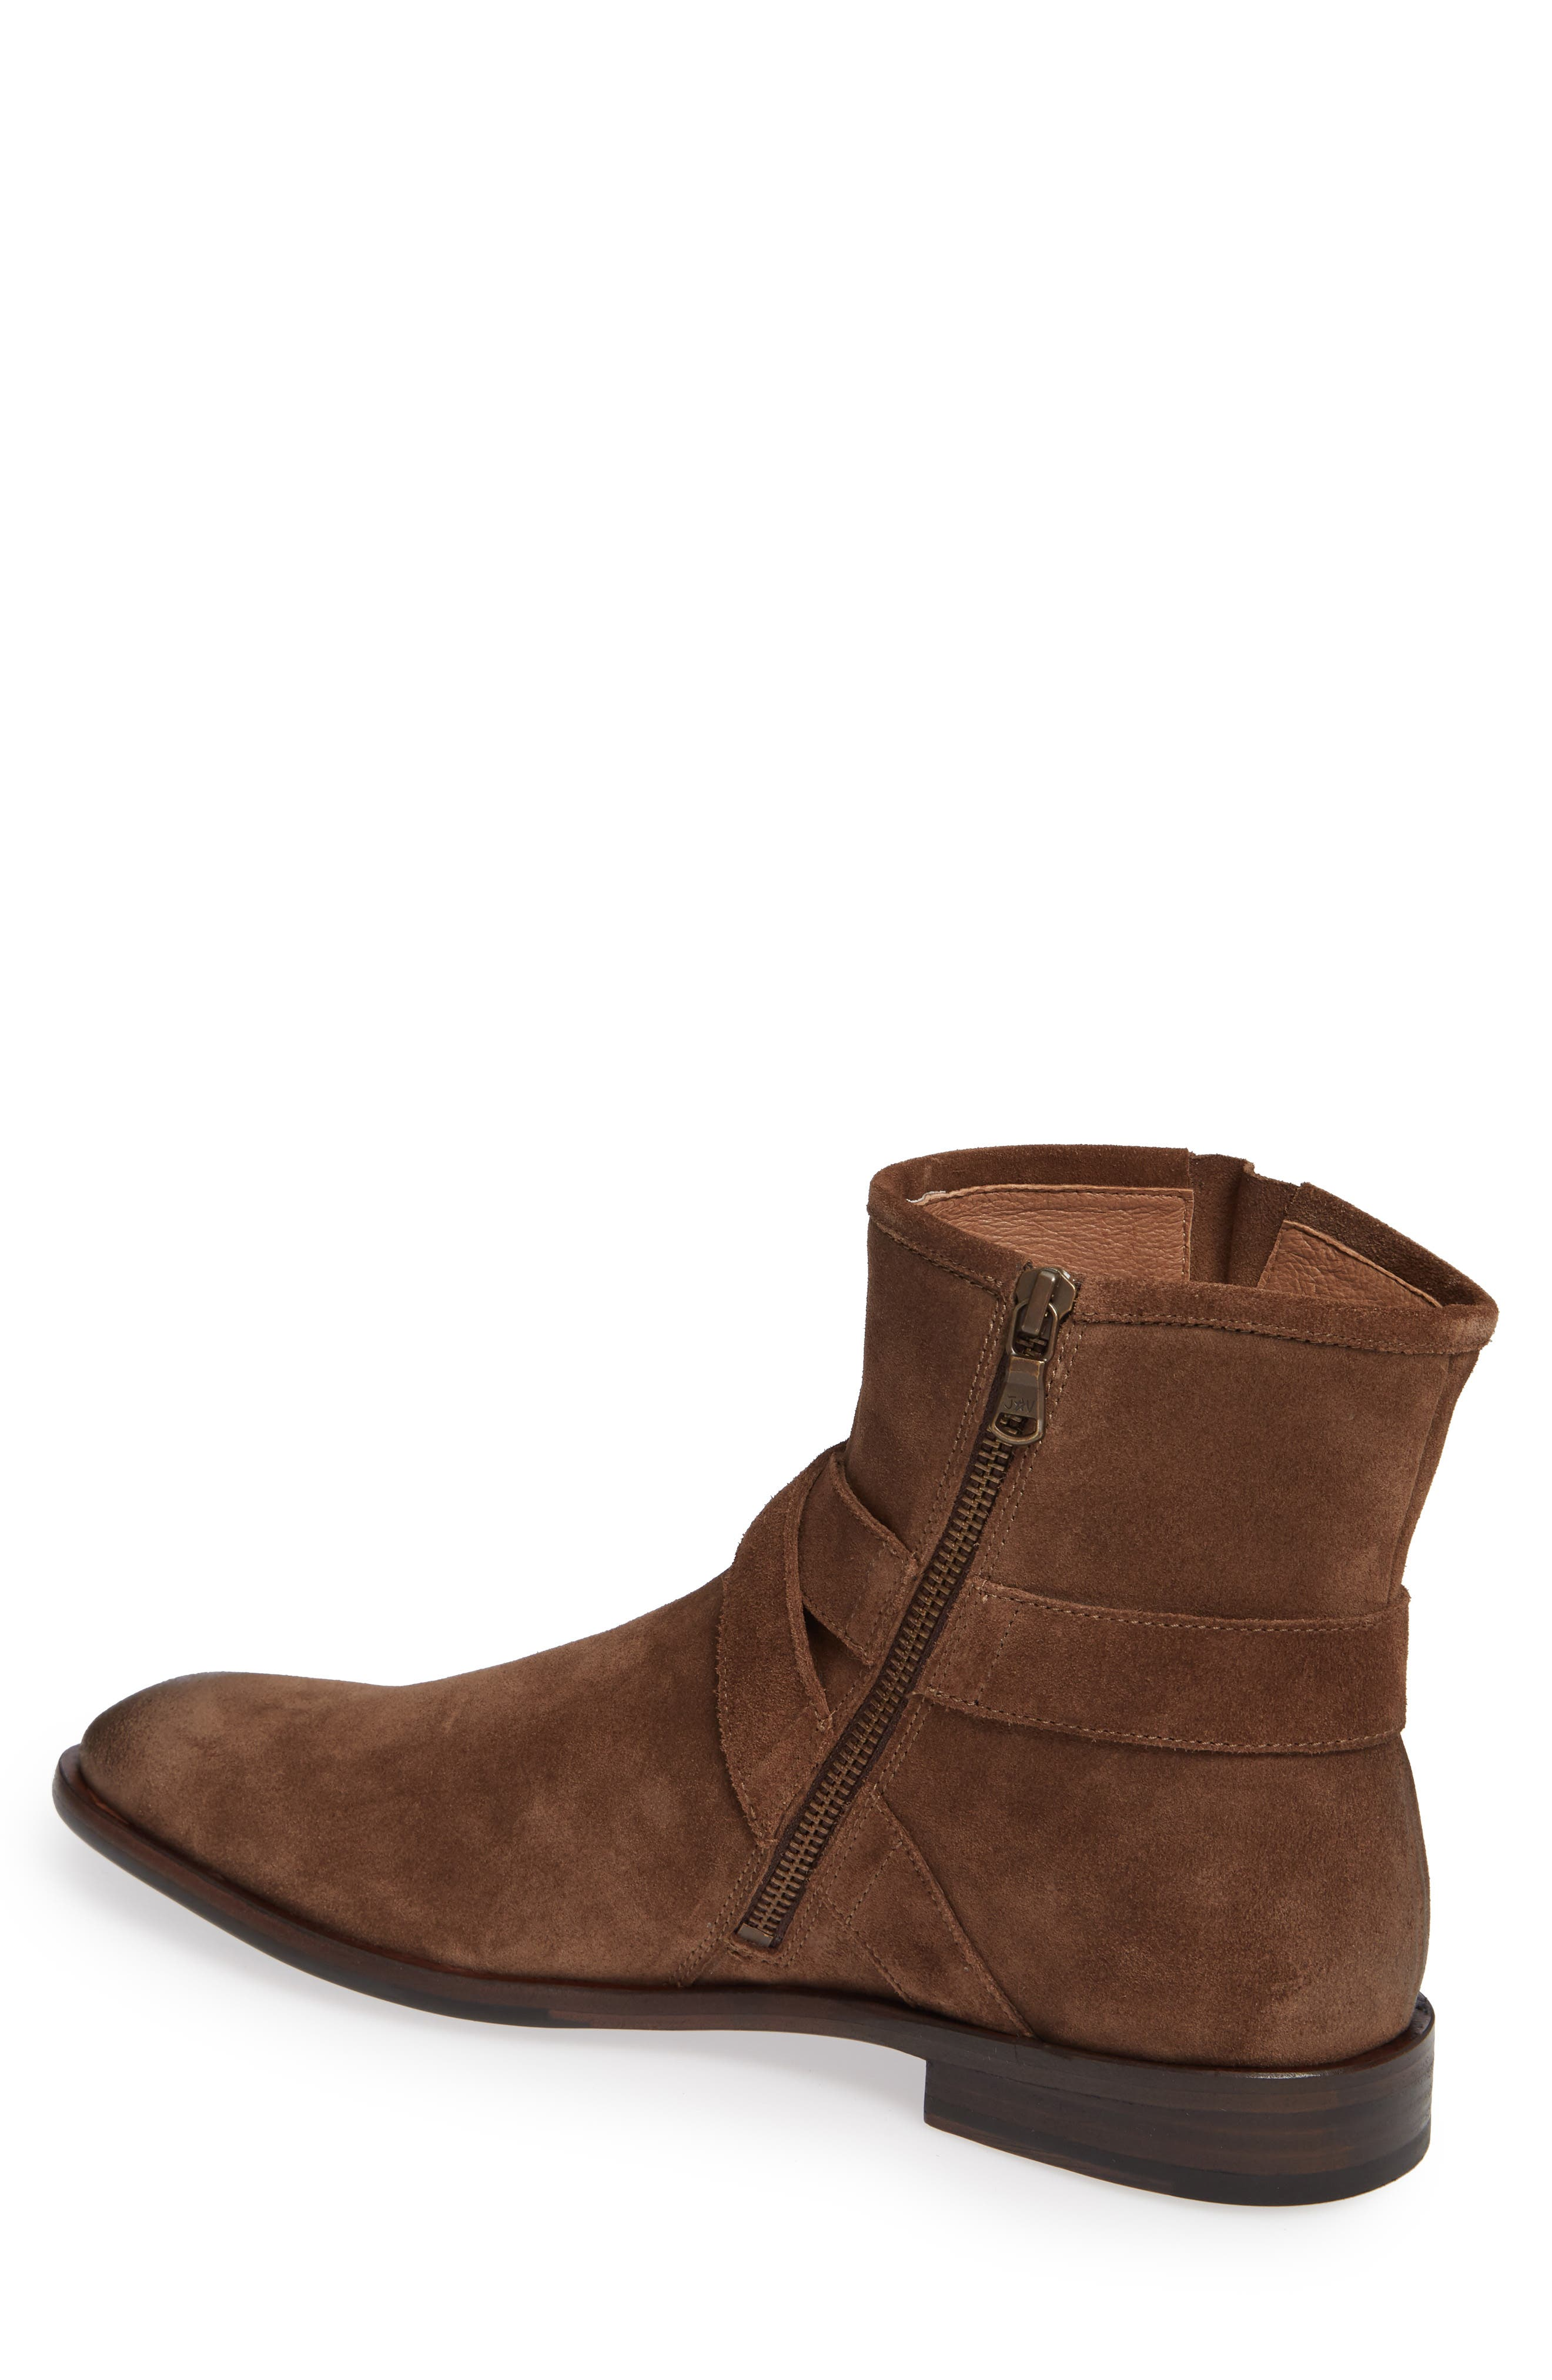 John Varvatos NYC Double Buckle Tall Boot,                             Alternate thumbnail 2, color,                             ANTIQUE BROWN SUEDE